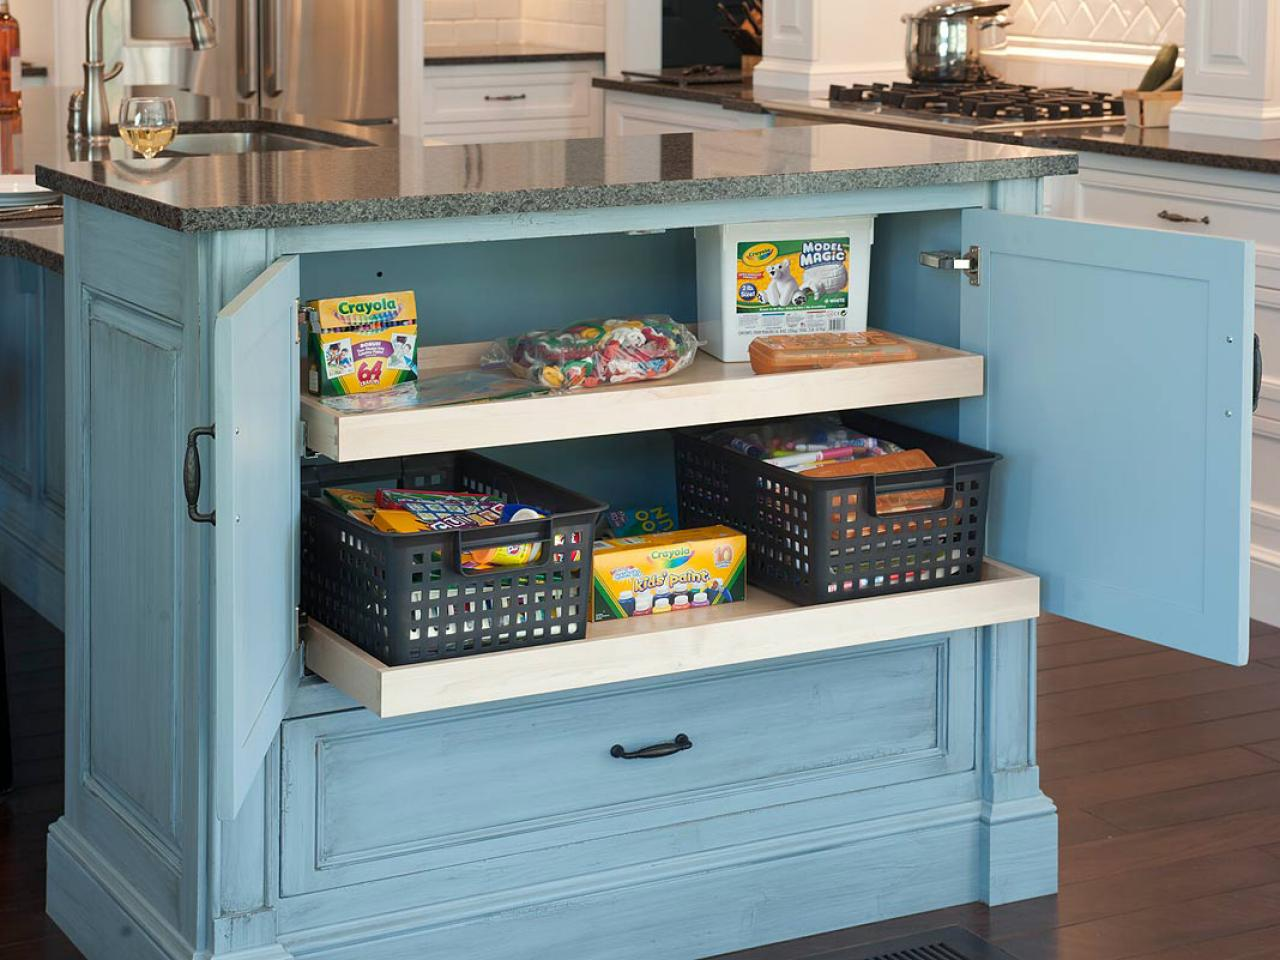 Kitchen Island Cabinets: Pictures & Ideas From HGTV | HGTV